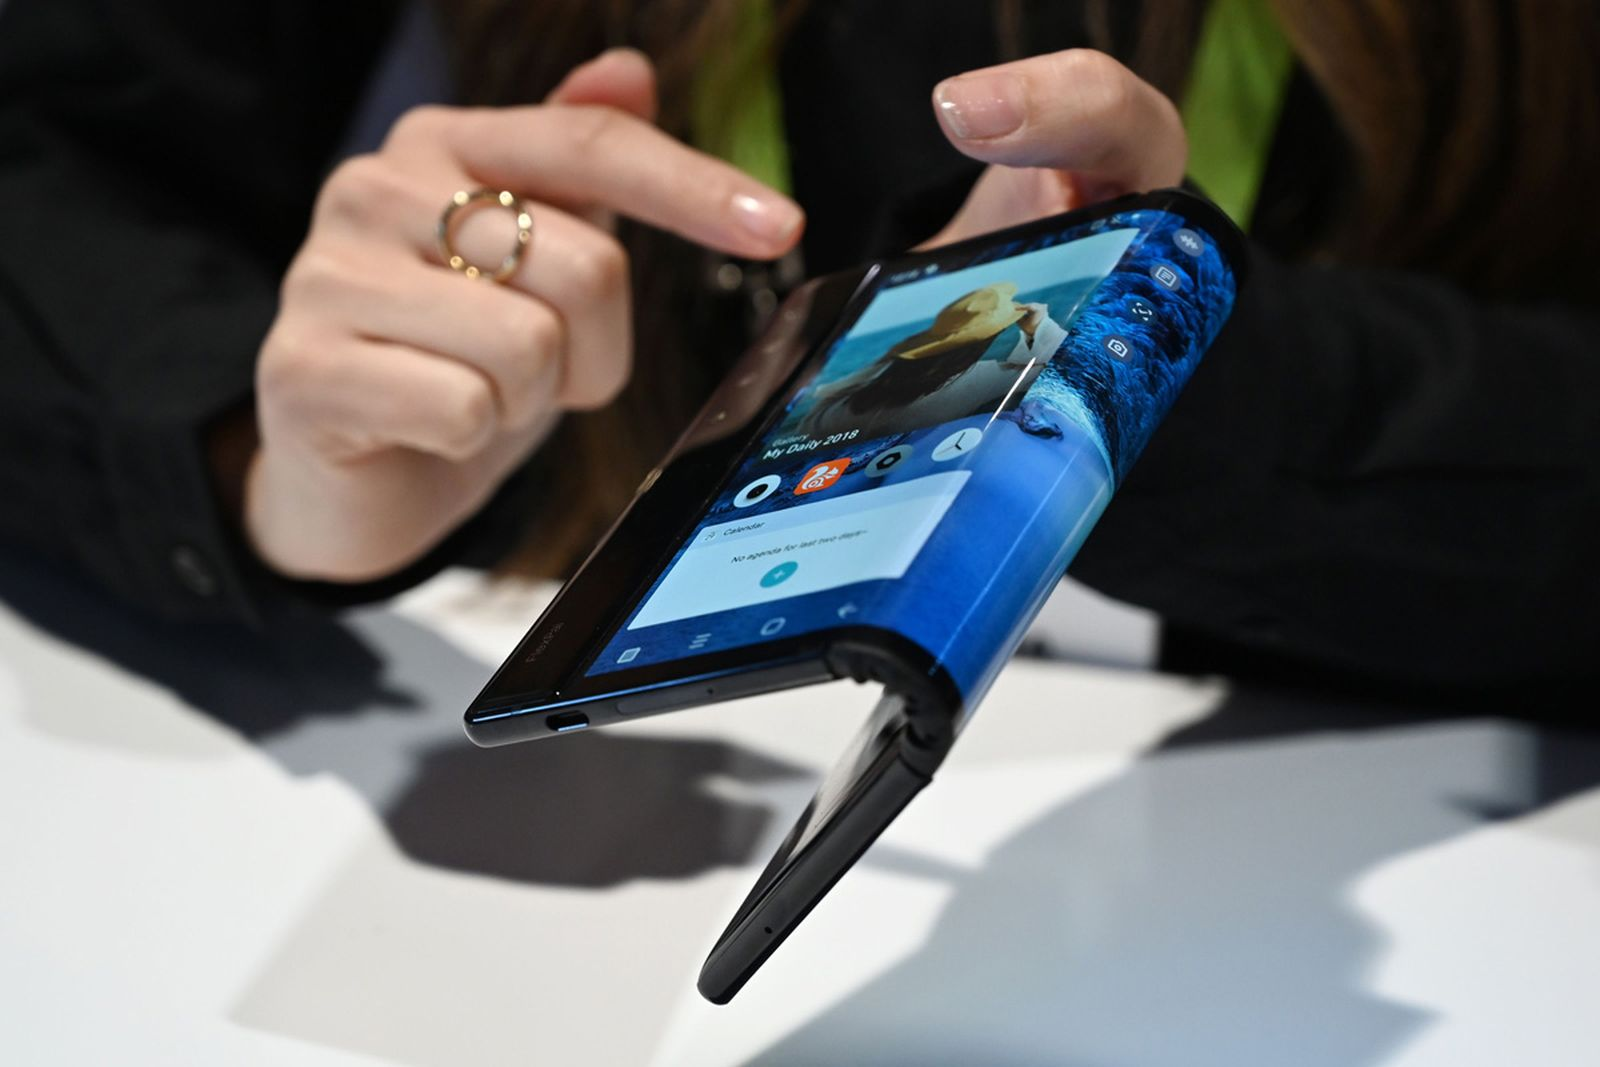 royole flexpai CES 2019 technology